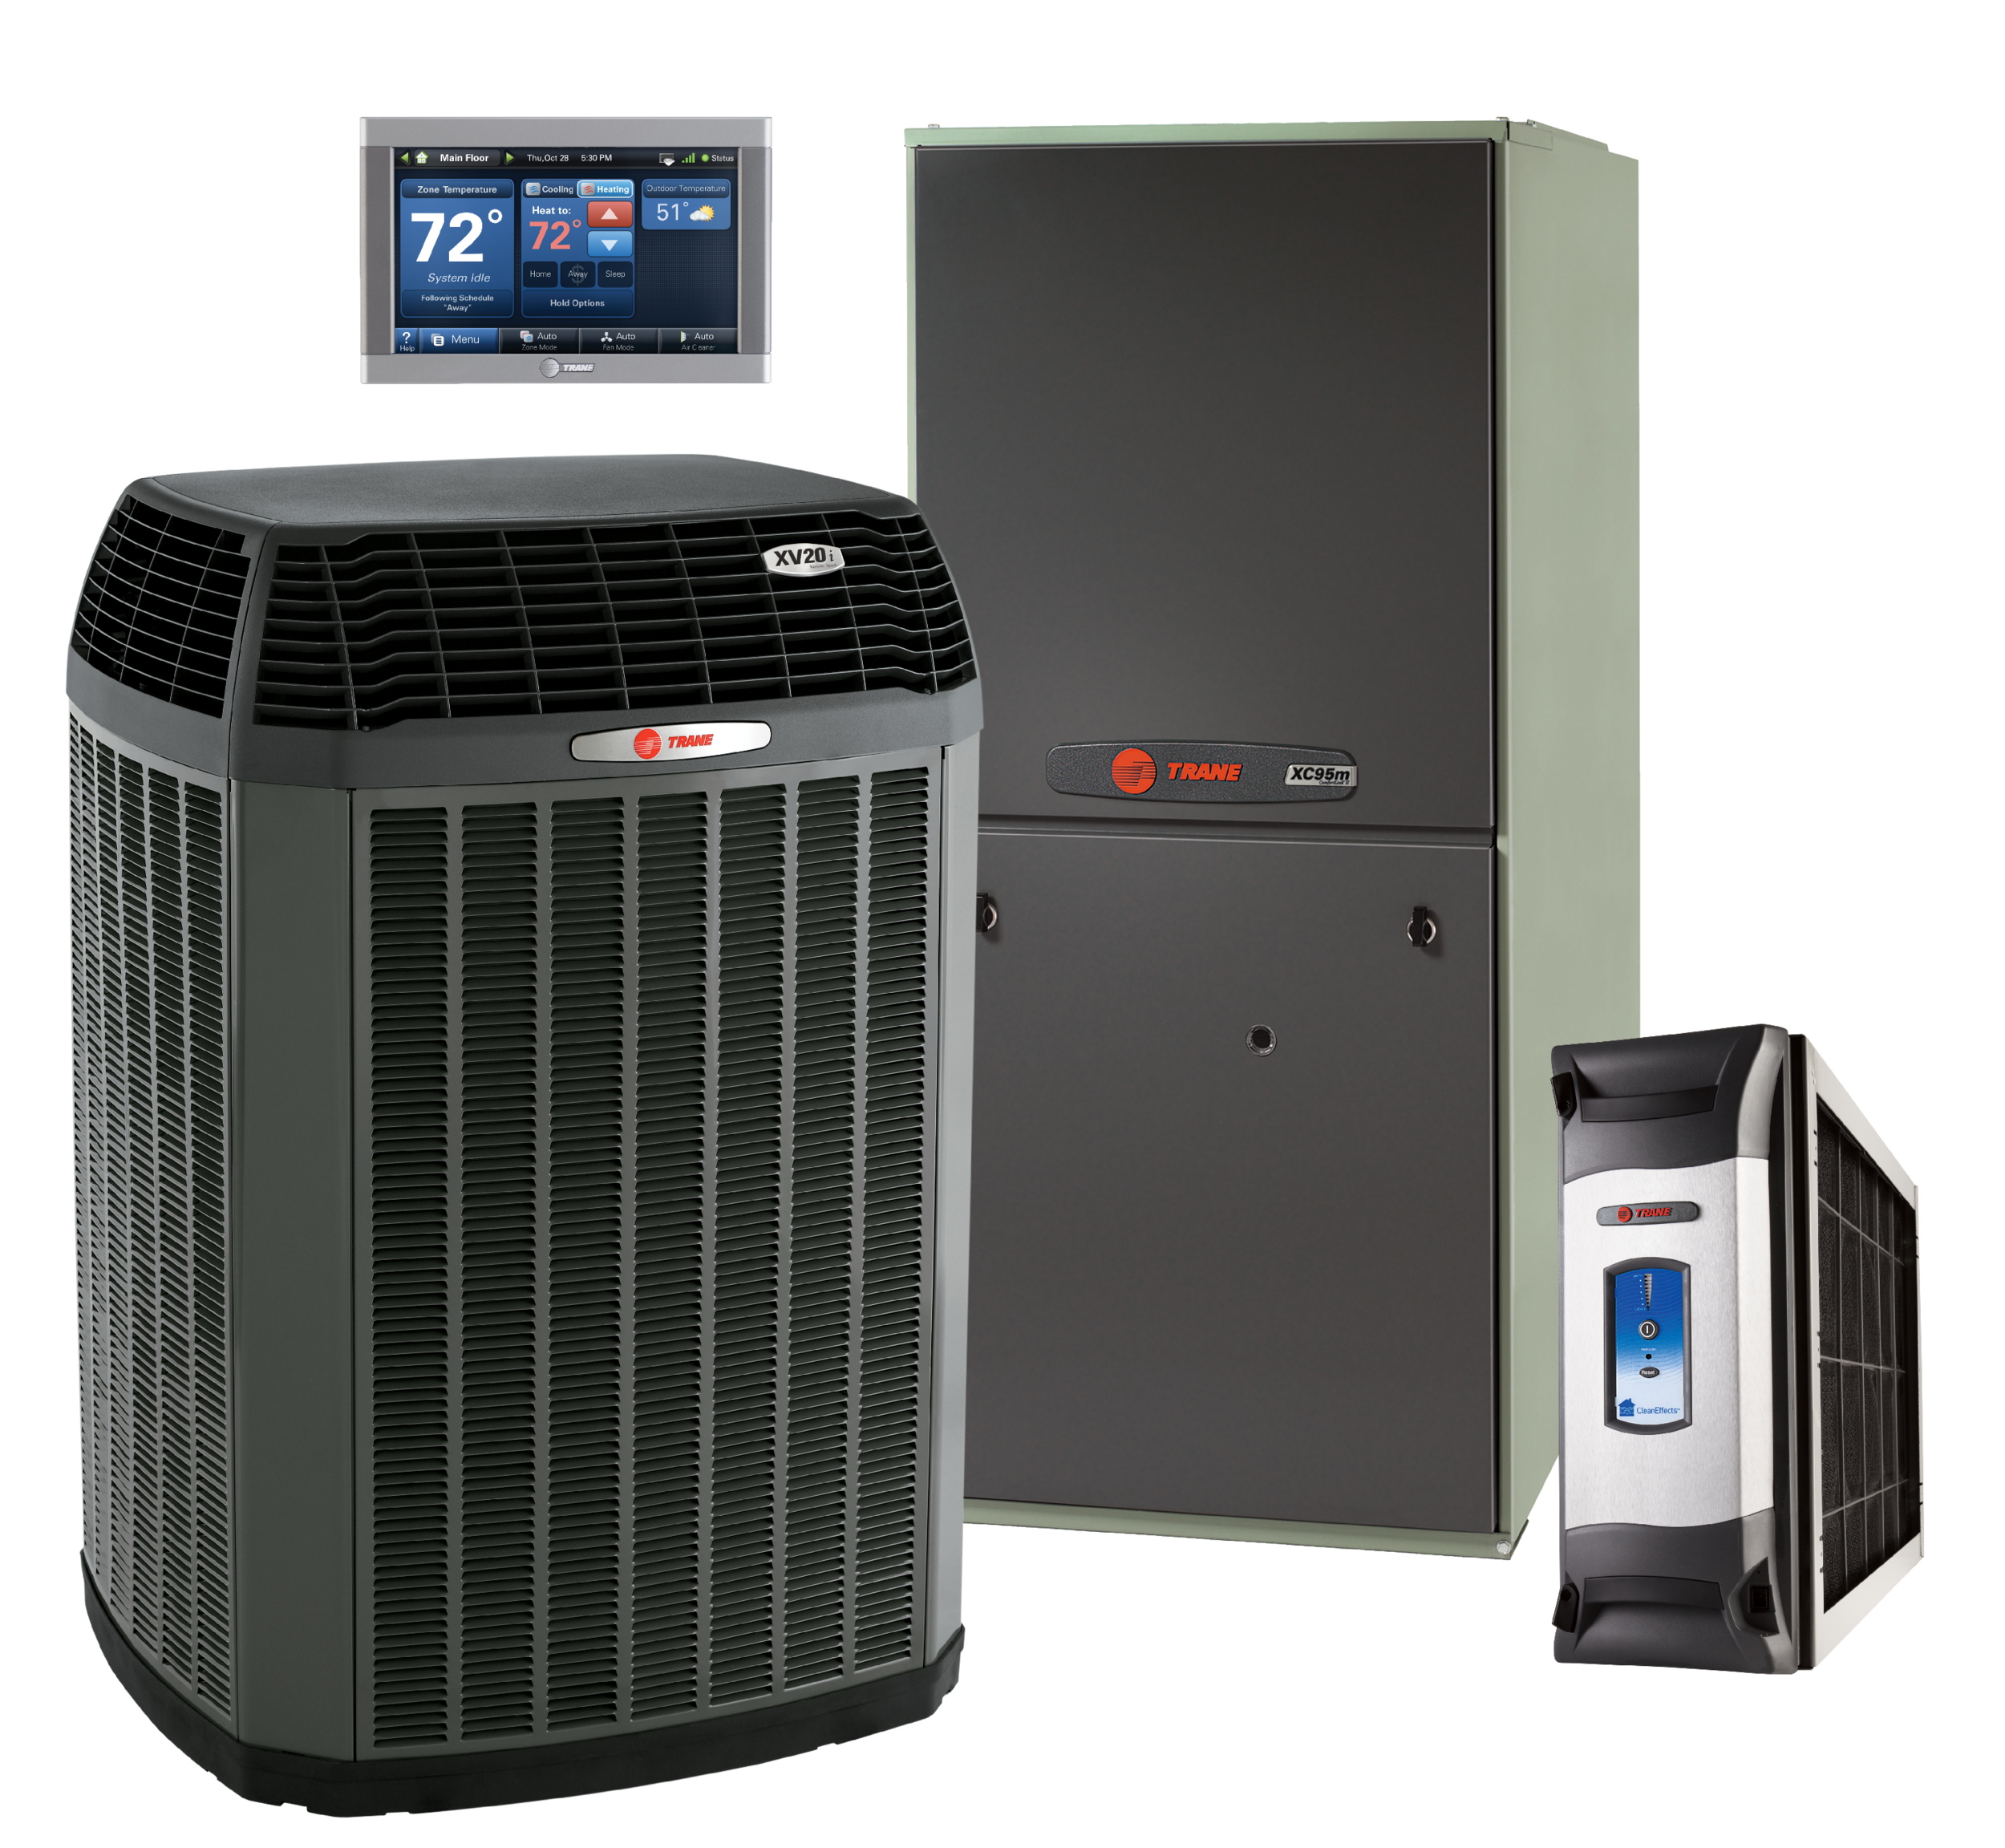 XV20i,XC95,XL950,CleanEffects_Financing options available for Trane heating and cooling equipment. Ask us for a free estimate.